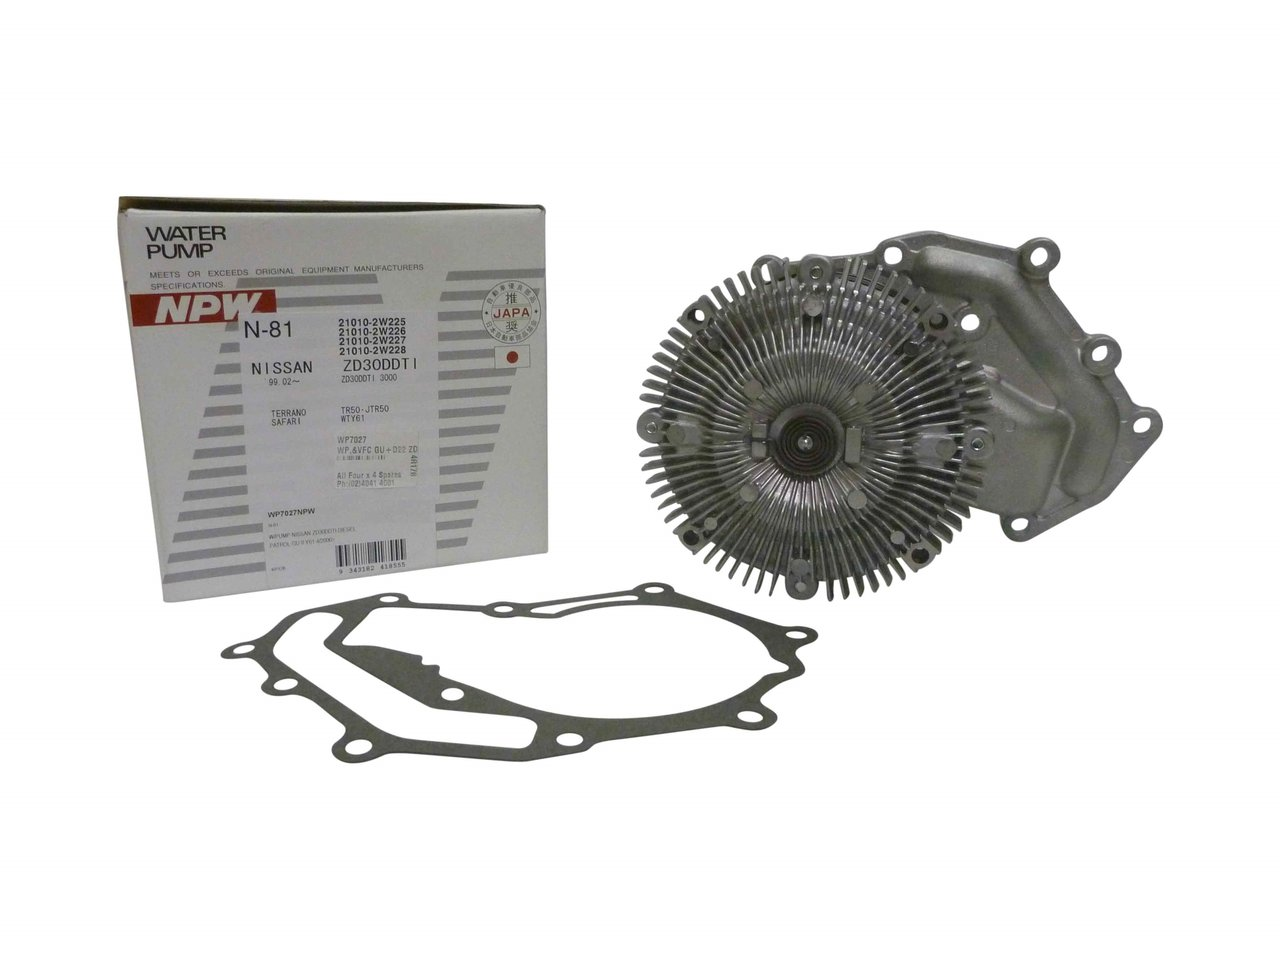 Water Pump Viscous Fan Clutch Suitable For D22 Navara Gu Patrol 1999 Isuzu Rodeo Zd30 3l Diesel